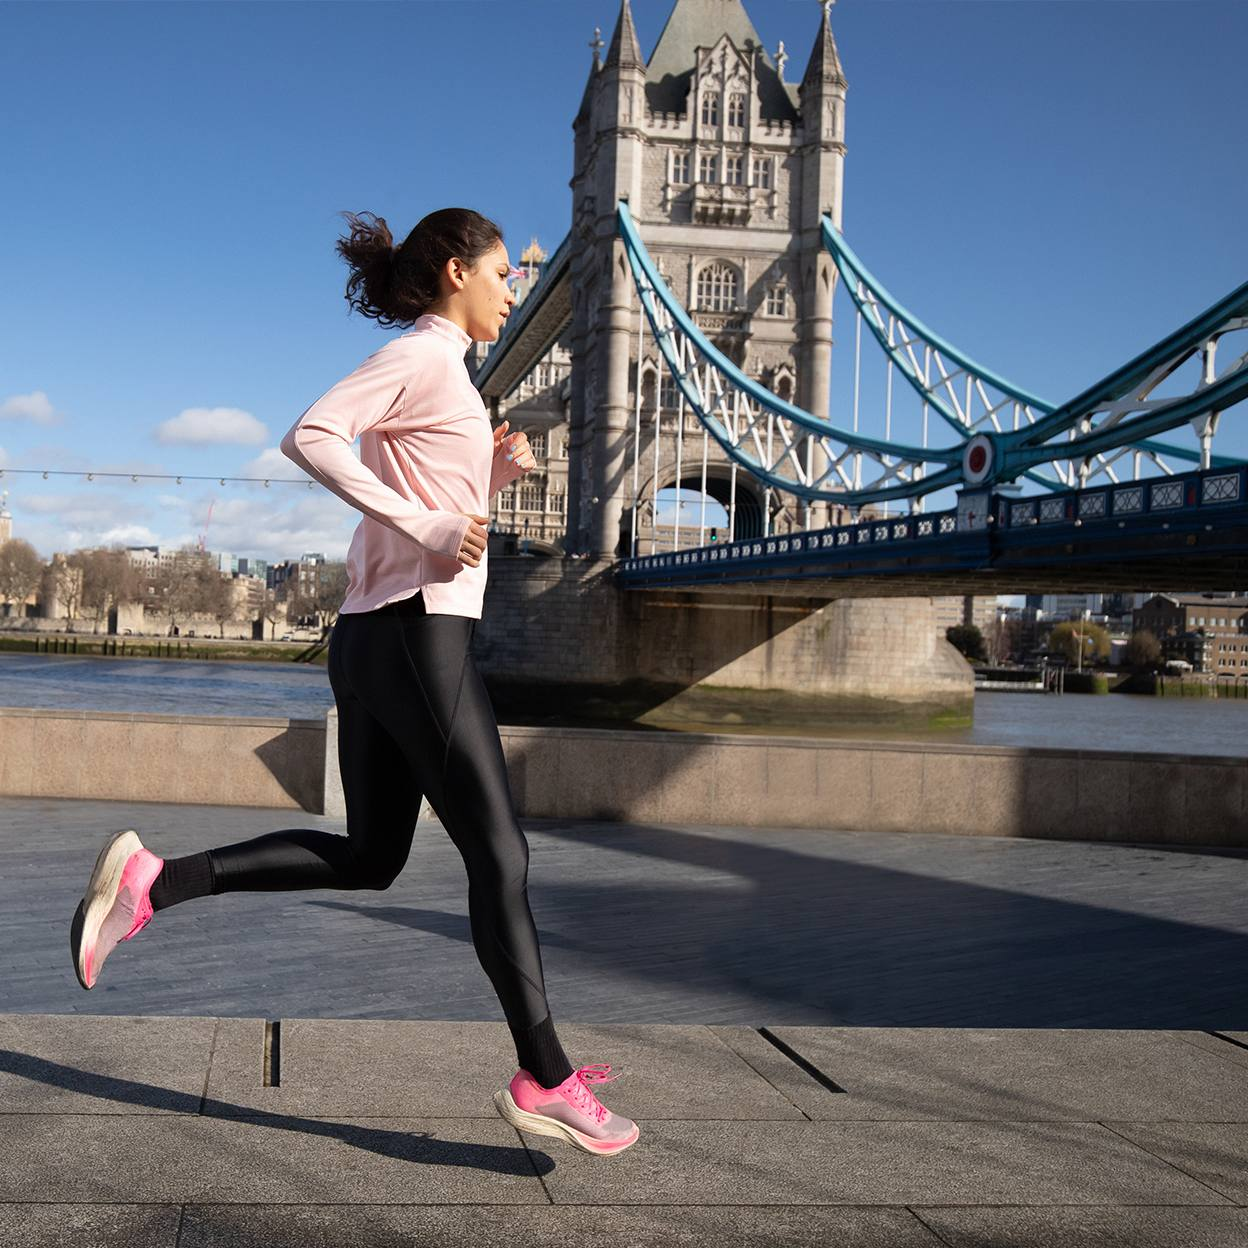 a young woman in exercise clothes running along the Thames River and bridge in London